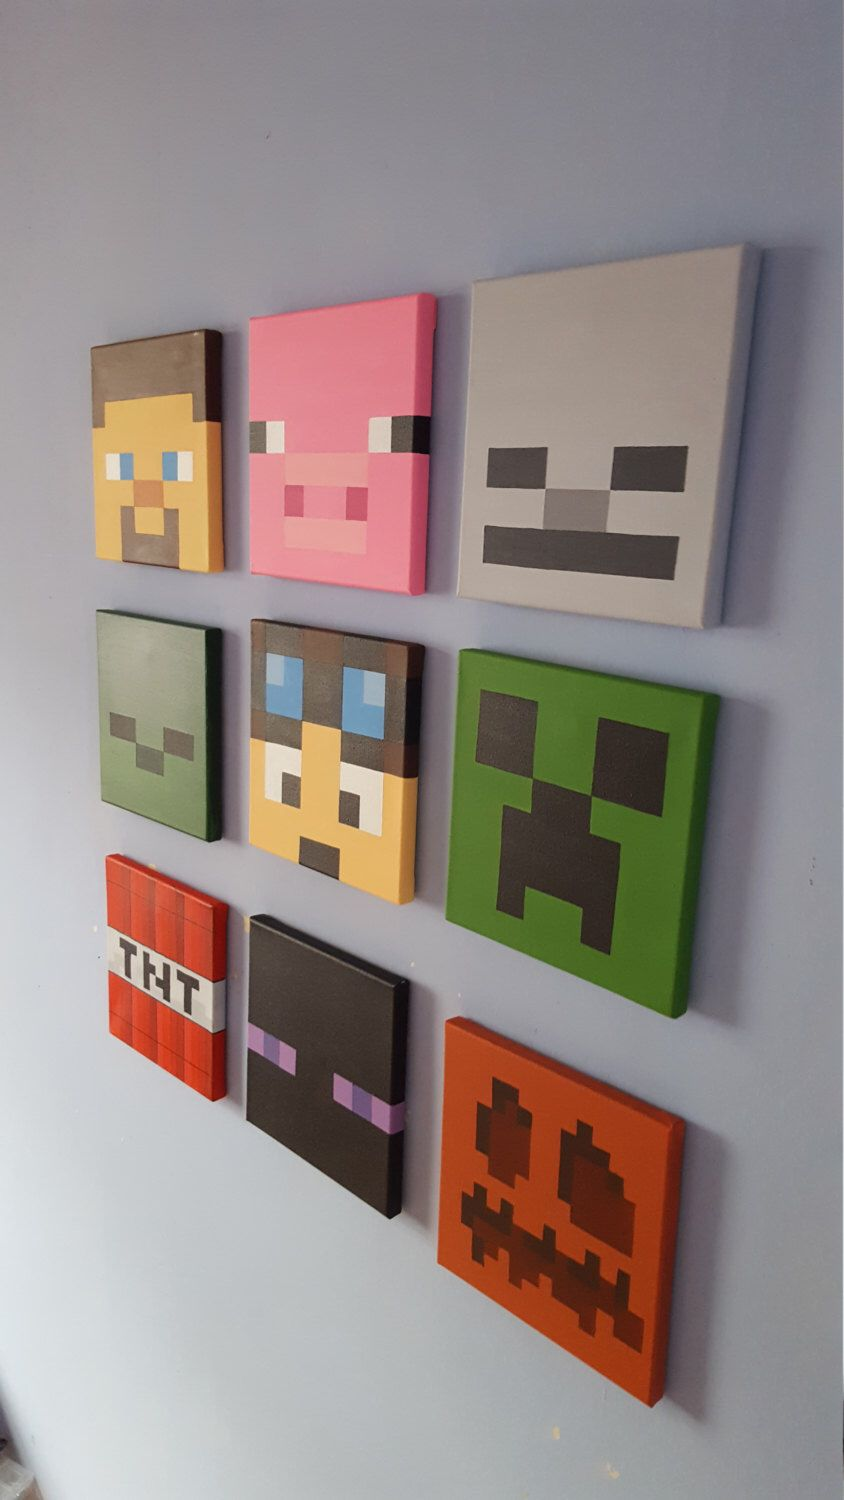 Minecraft Wall Art Set Of 9 Canvases Small 8 X 8 Minecraft Wall Minecraft Bedroom Game Room Design